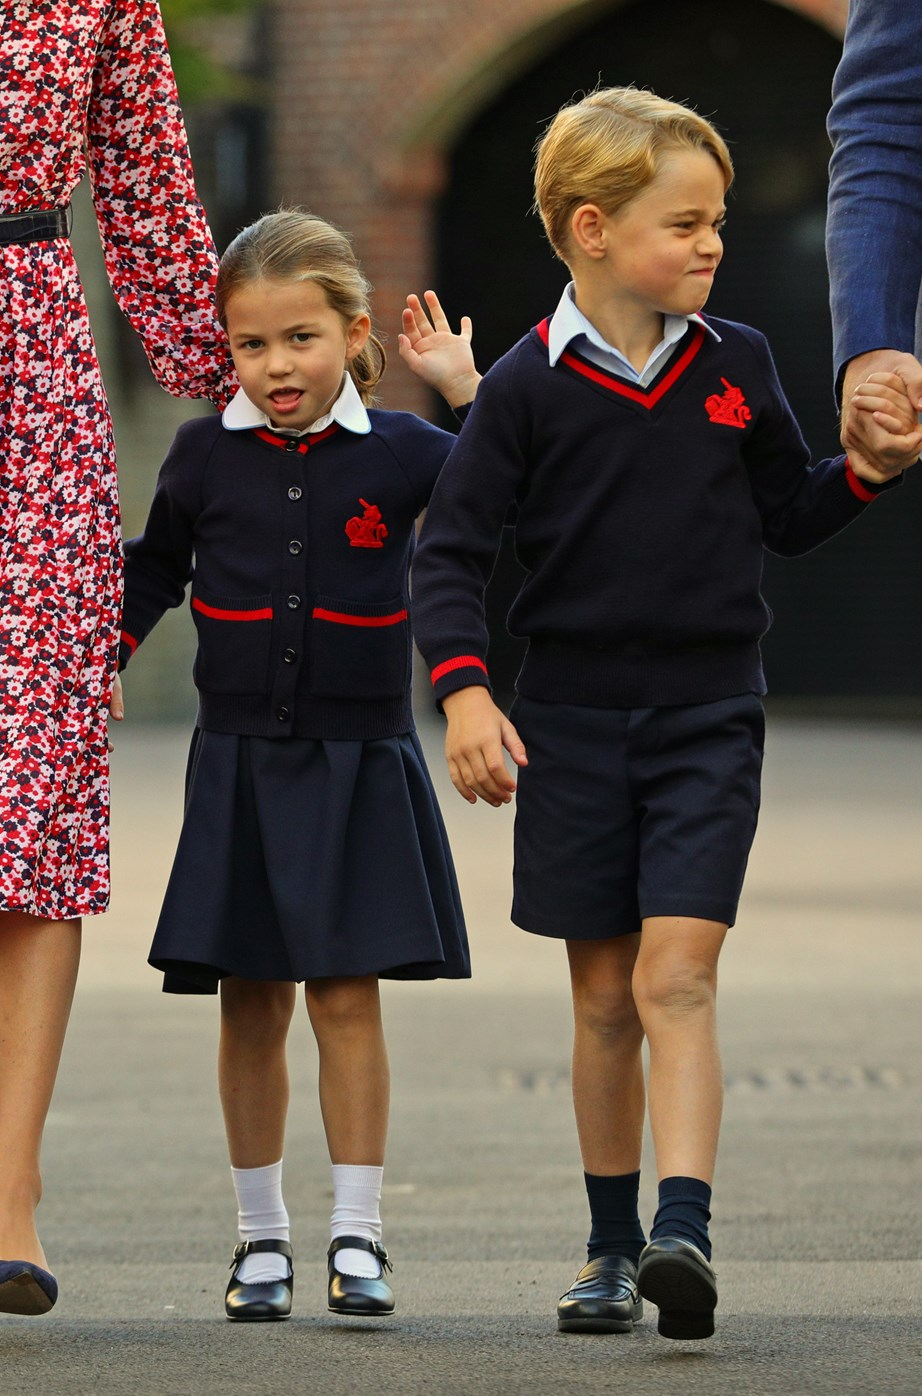 Princess Charlotte waves to the press. *(Image: Getty)*